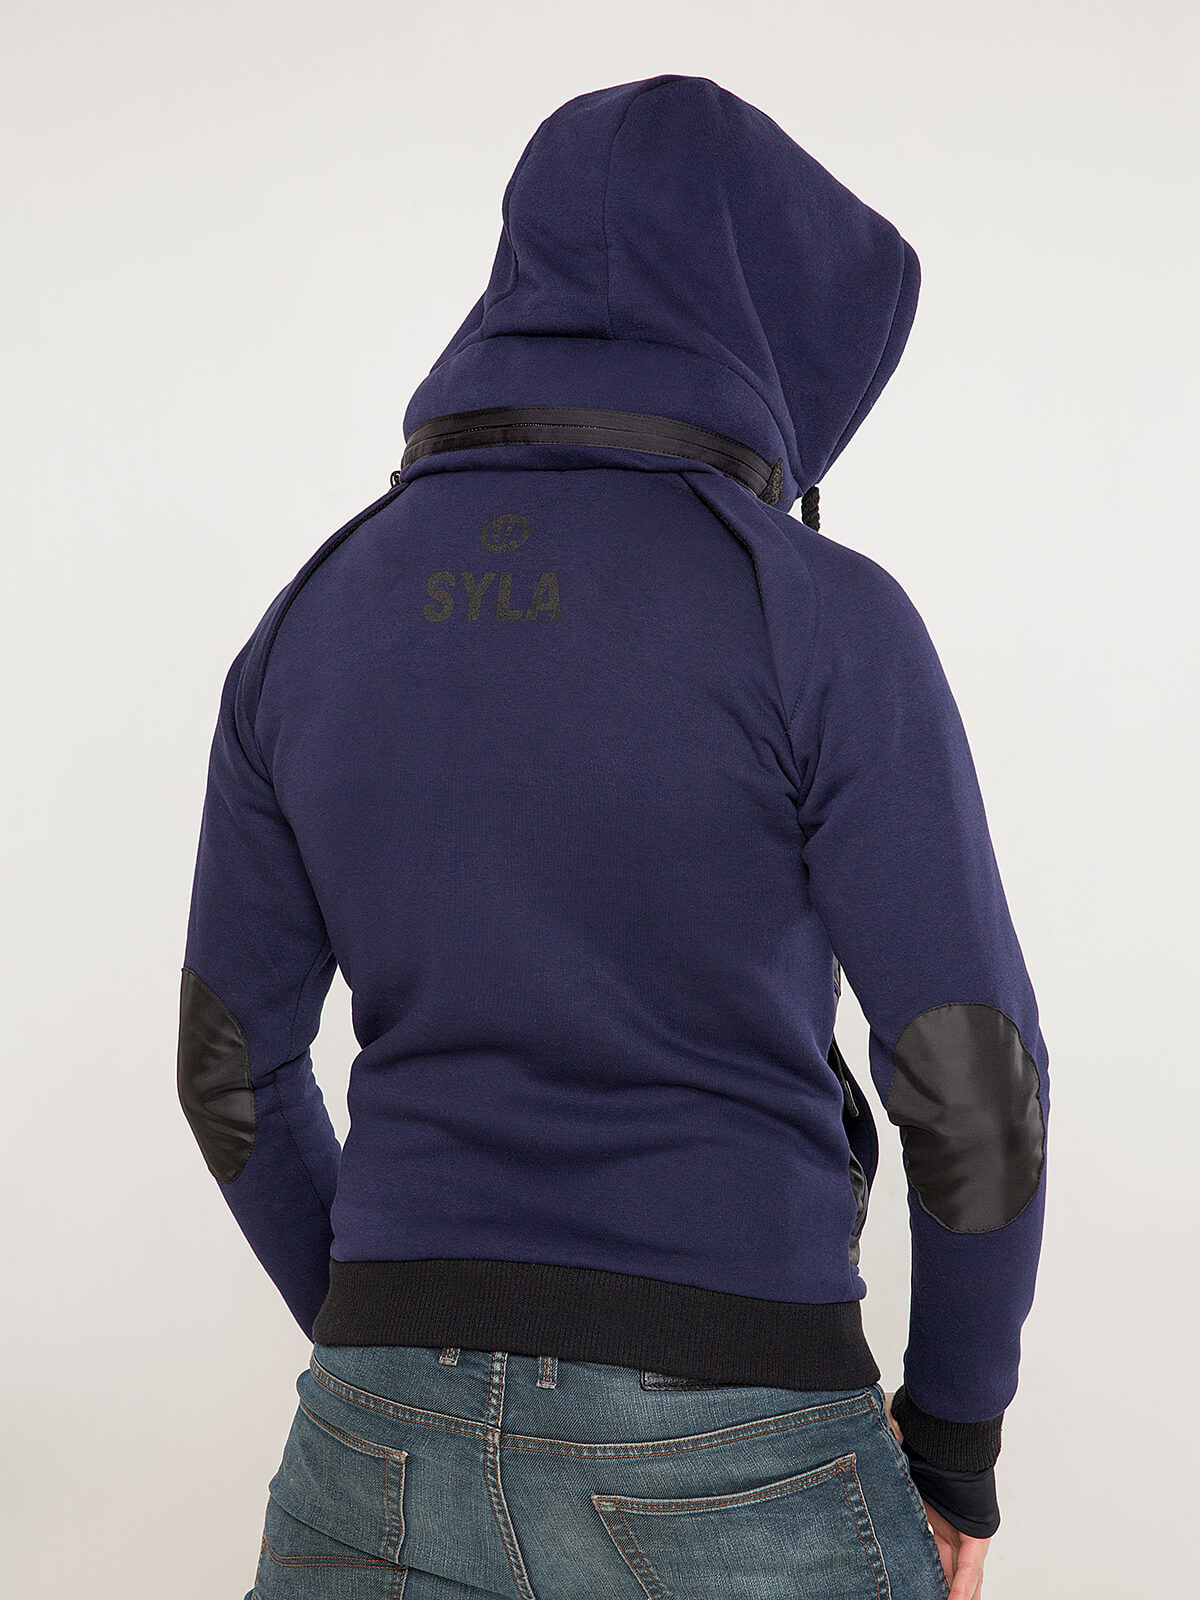 Men's Hoodie Syla. Color navy blue.  Material of the inserts – oxford cloth: 100% polyester.